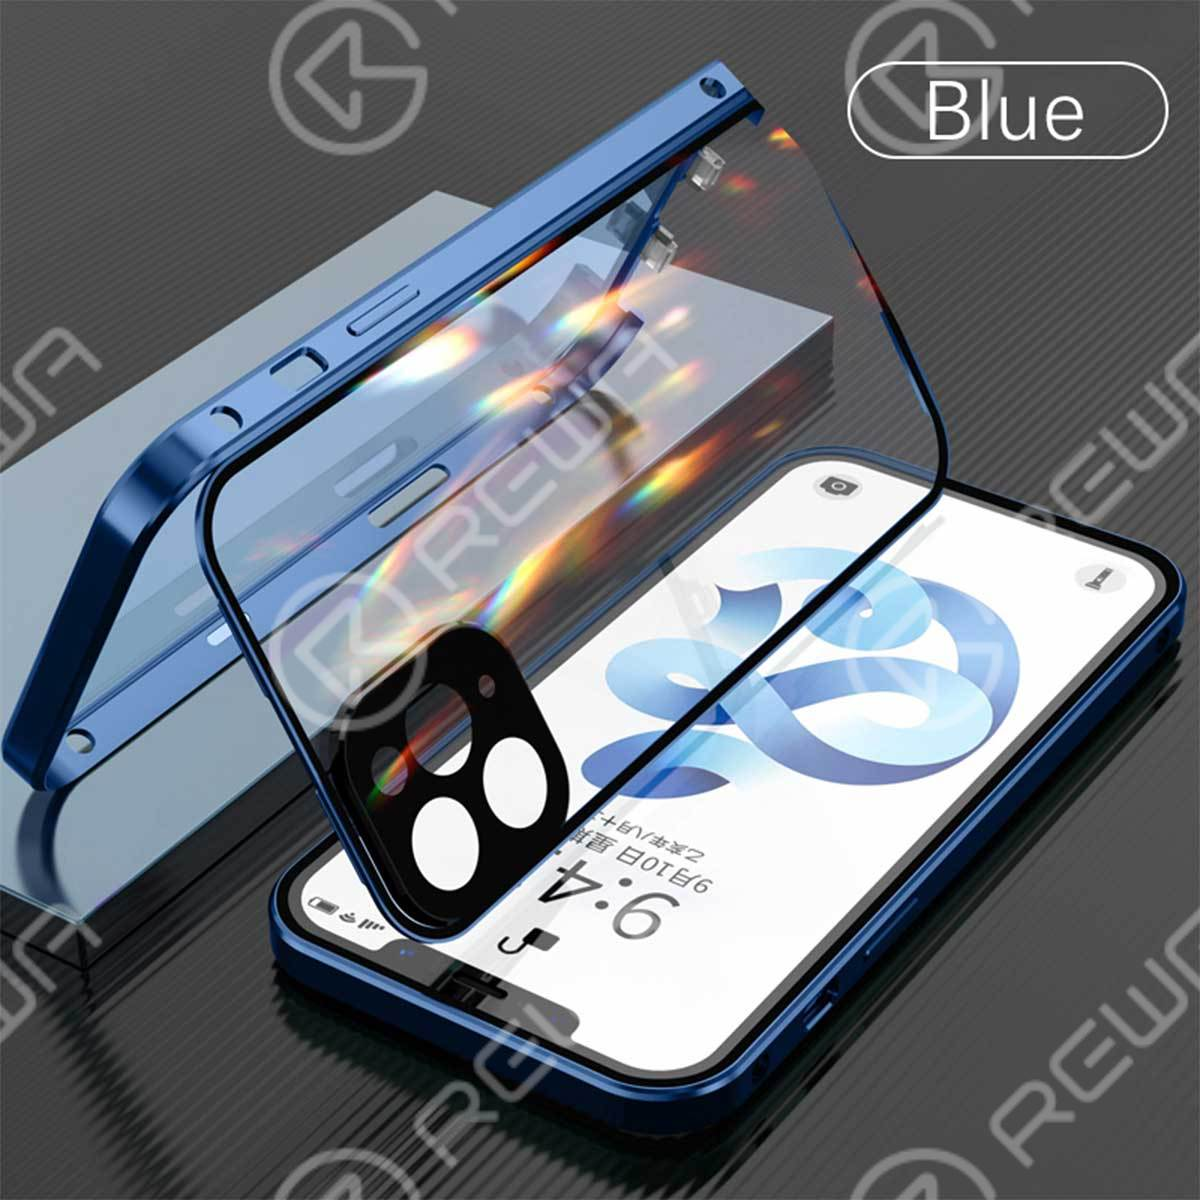 Double-Sided Buckle Phone Case With Camera Lens Protector For iPhone 7-12 Pro Max (Blue)